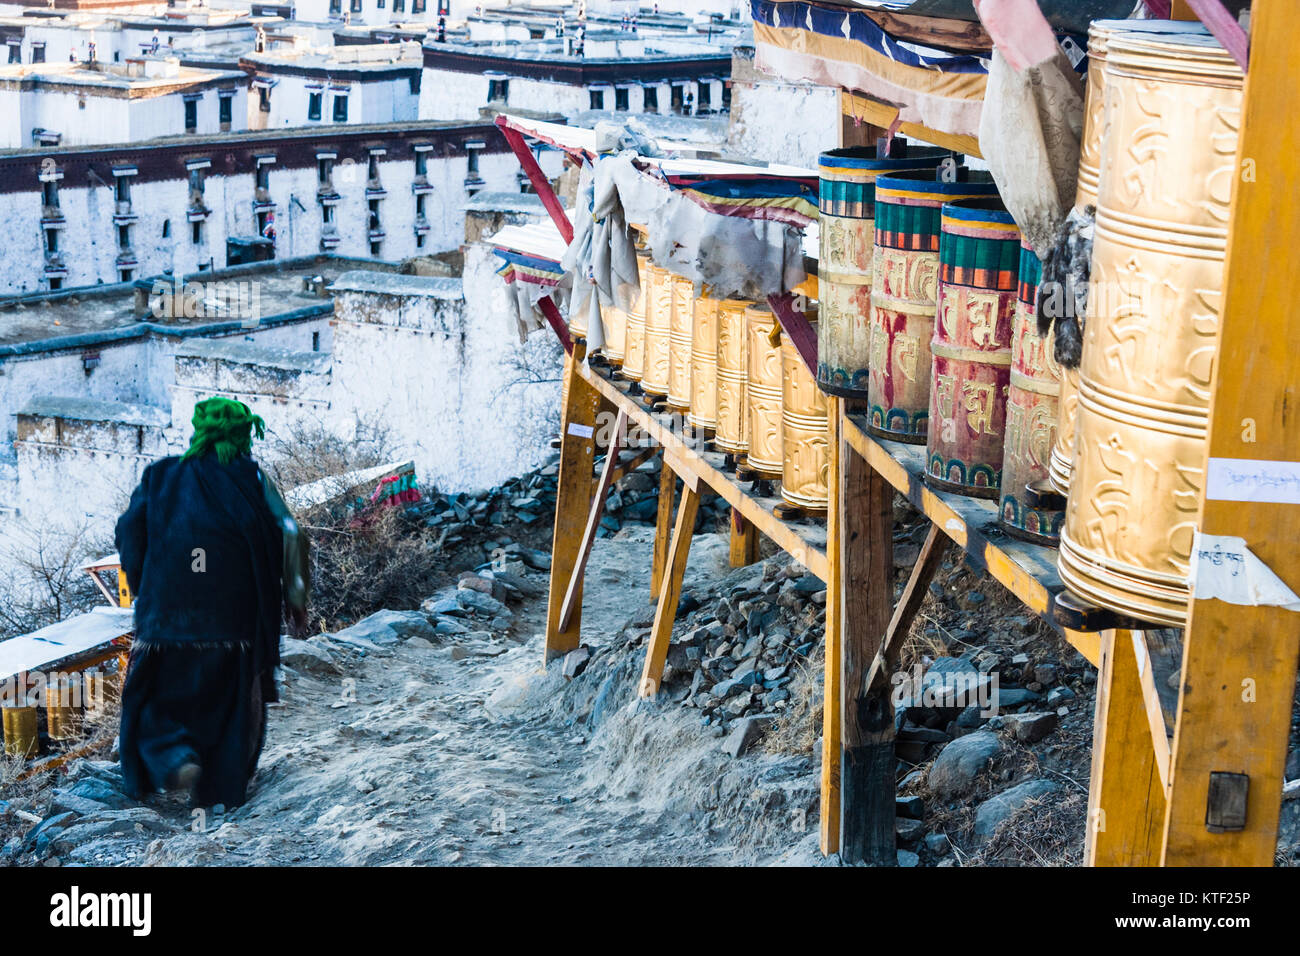 Tibetan pilgrim and prayer wheels at Tashilhunpo Monastery, Shigatse, Tibet - Stock Image